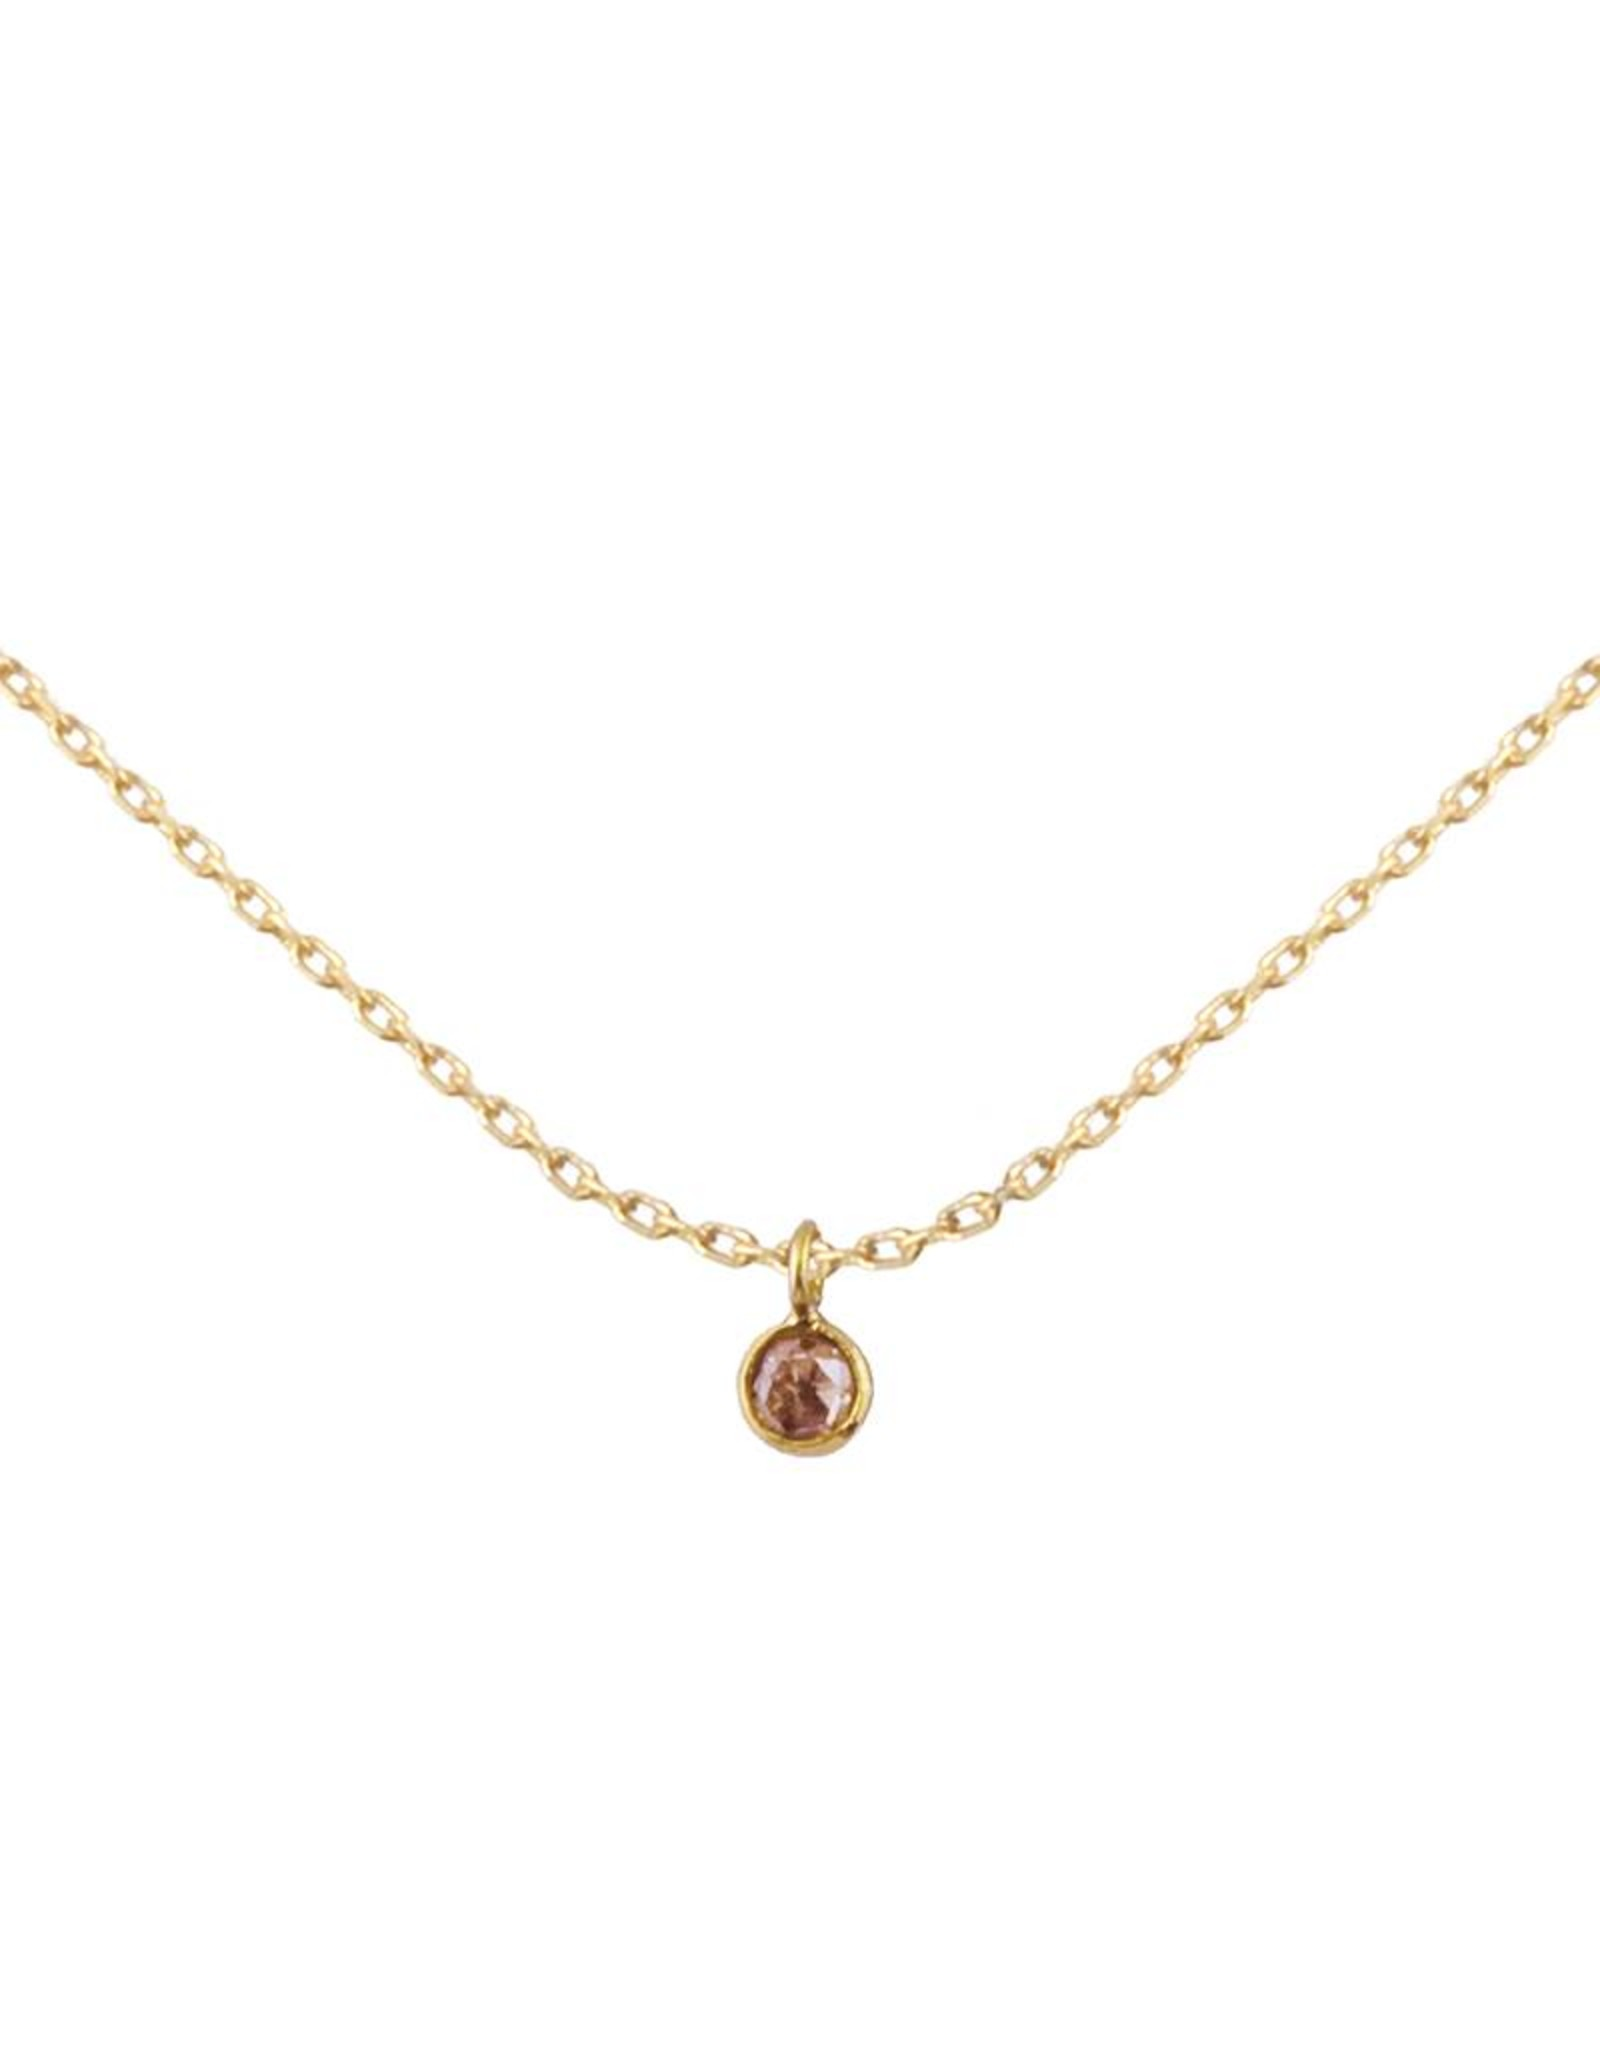 Bo Gold Ketting - Goud - Champagne diamant